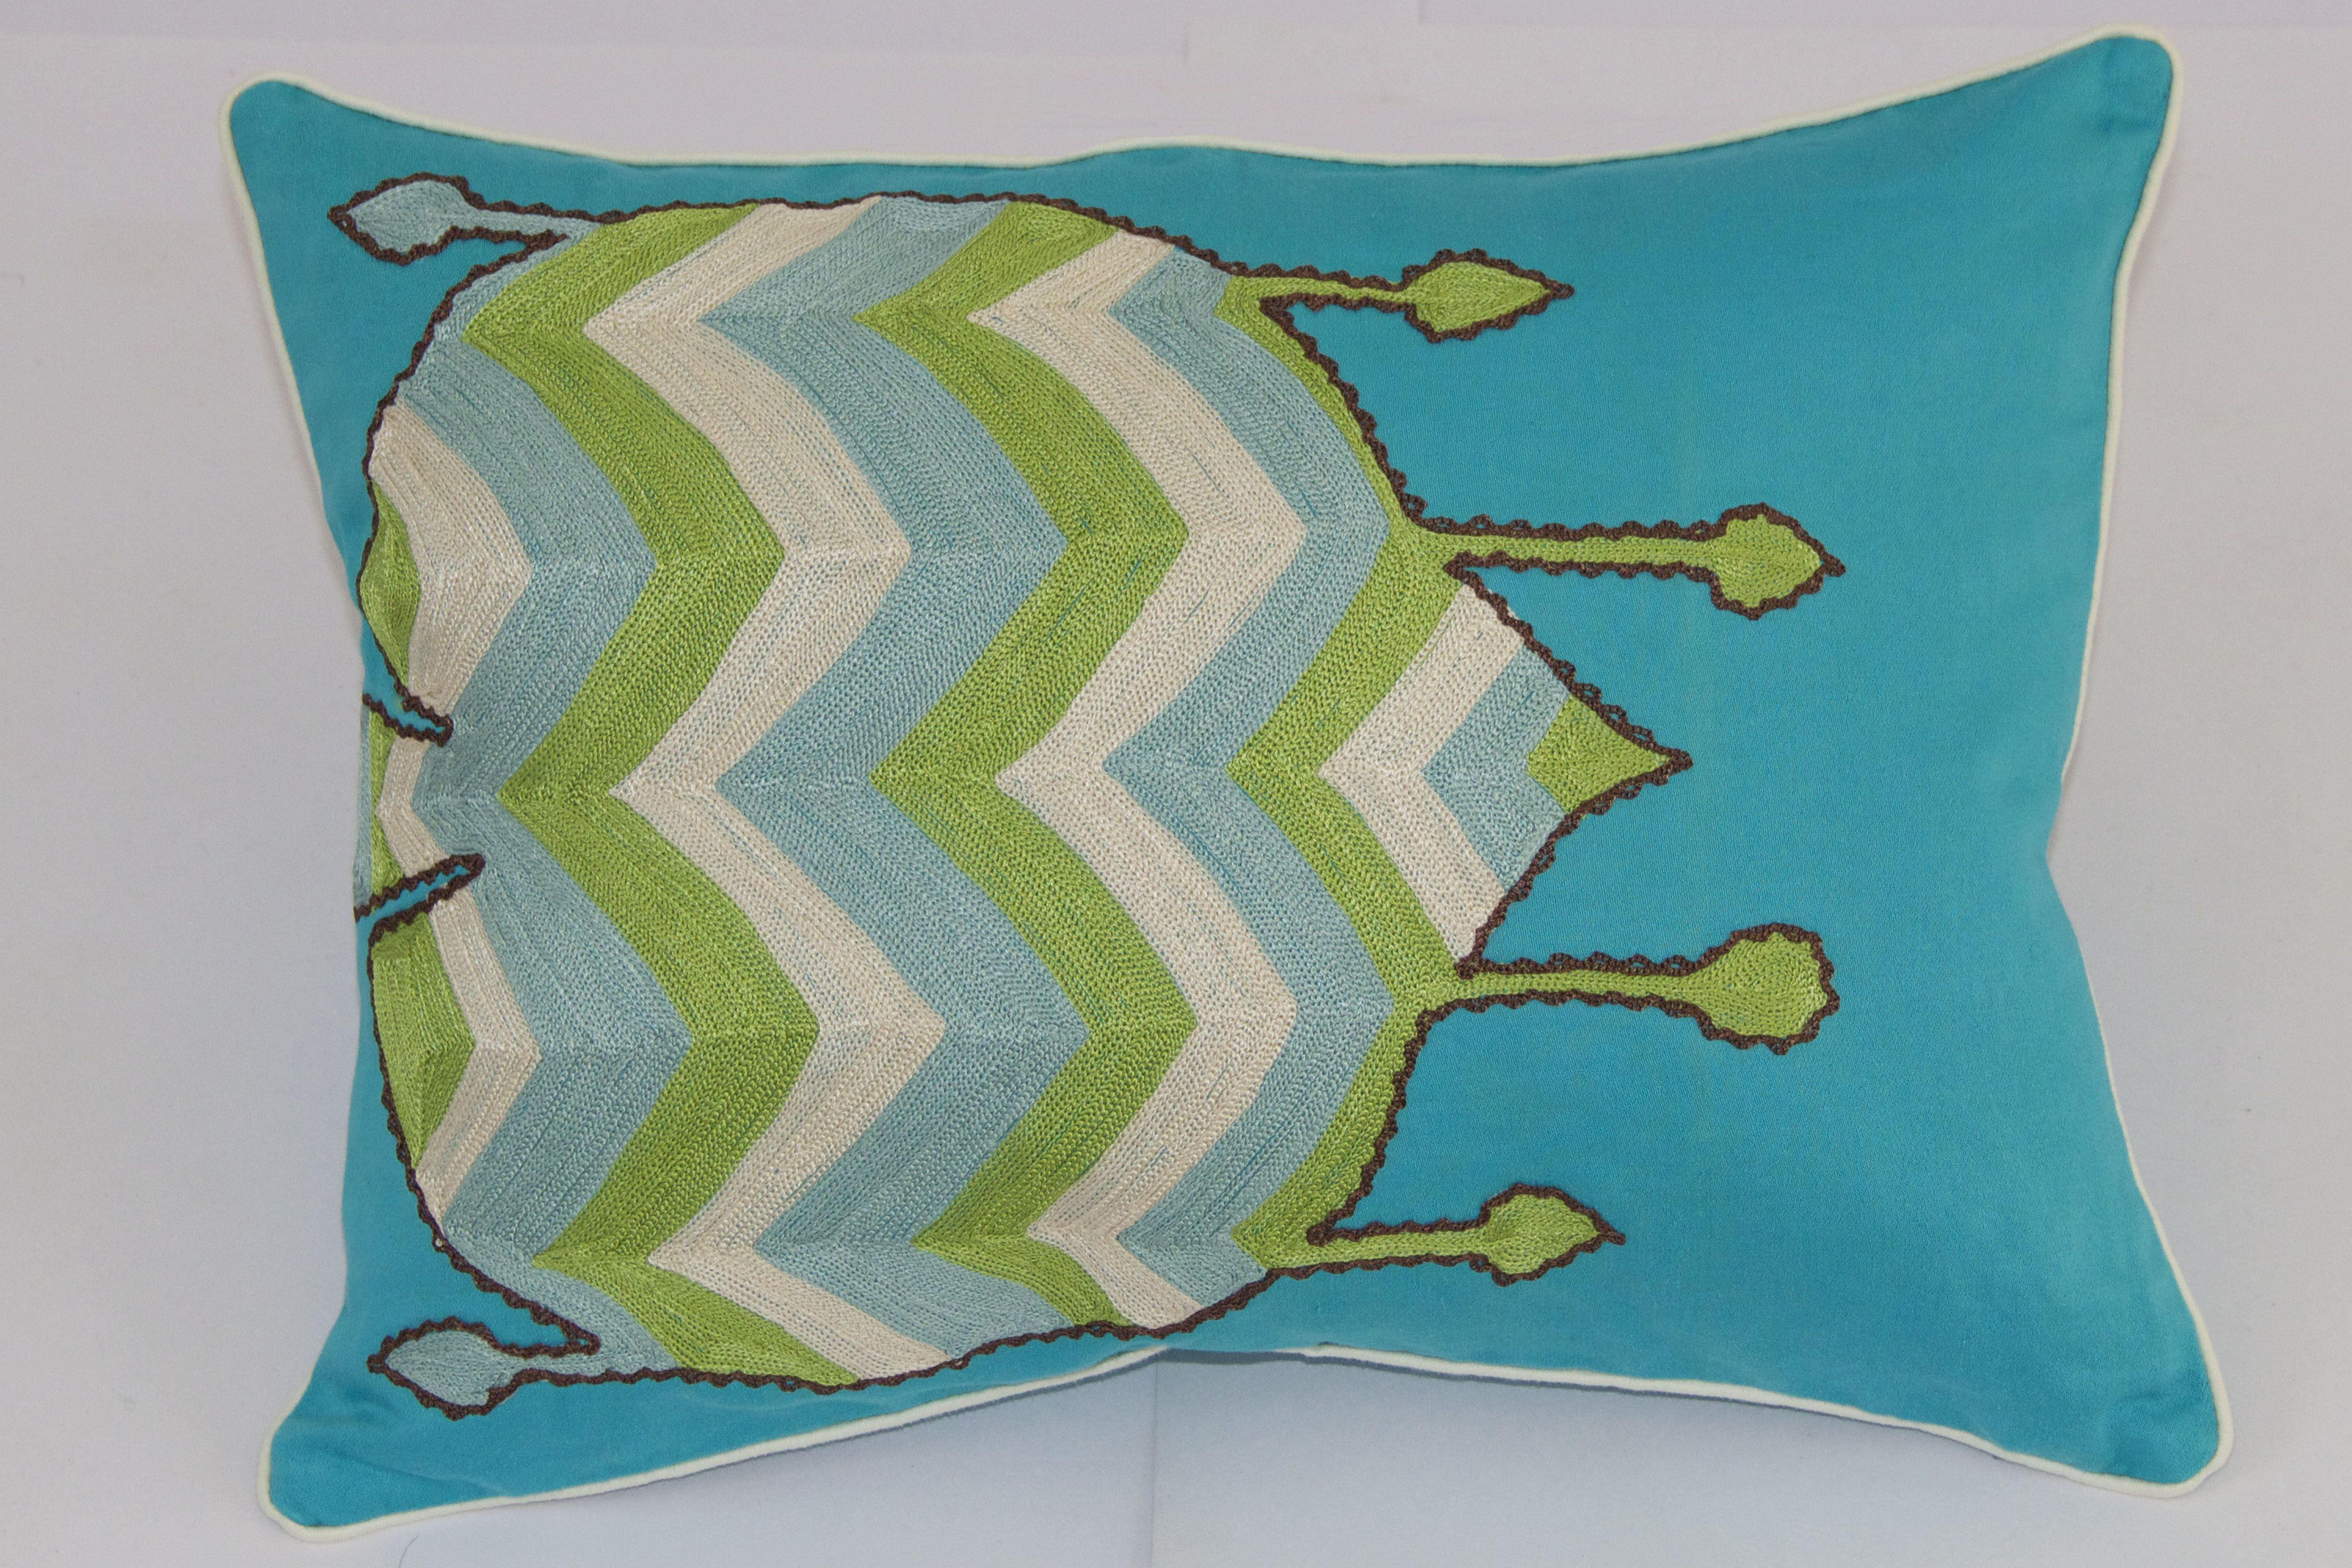 Tulli cushion in teal size x inch u hand embroidery on